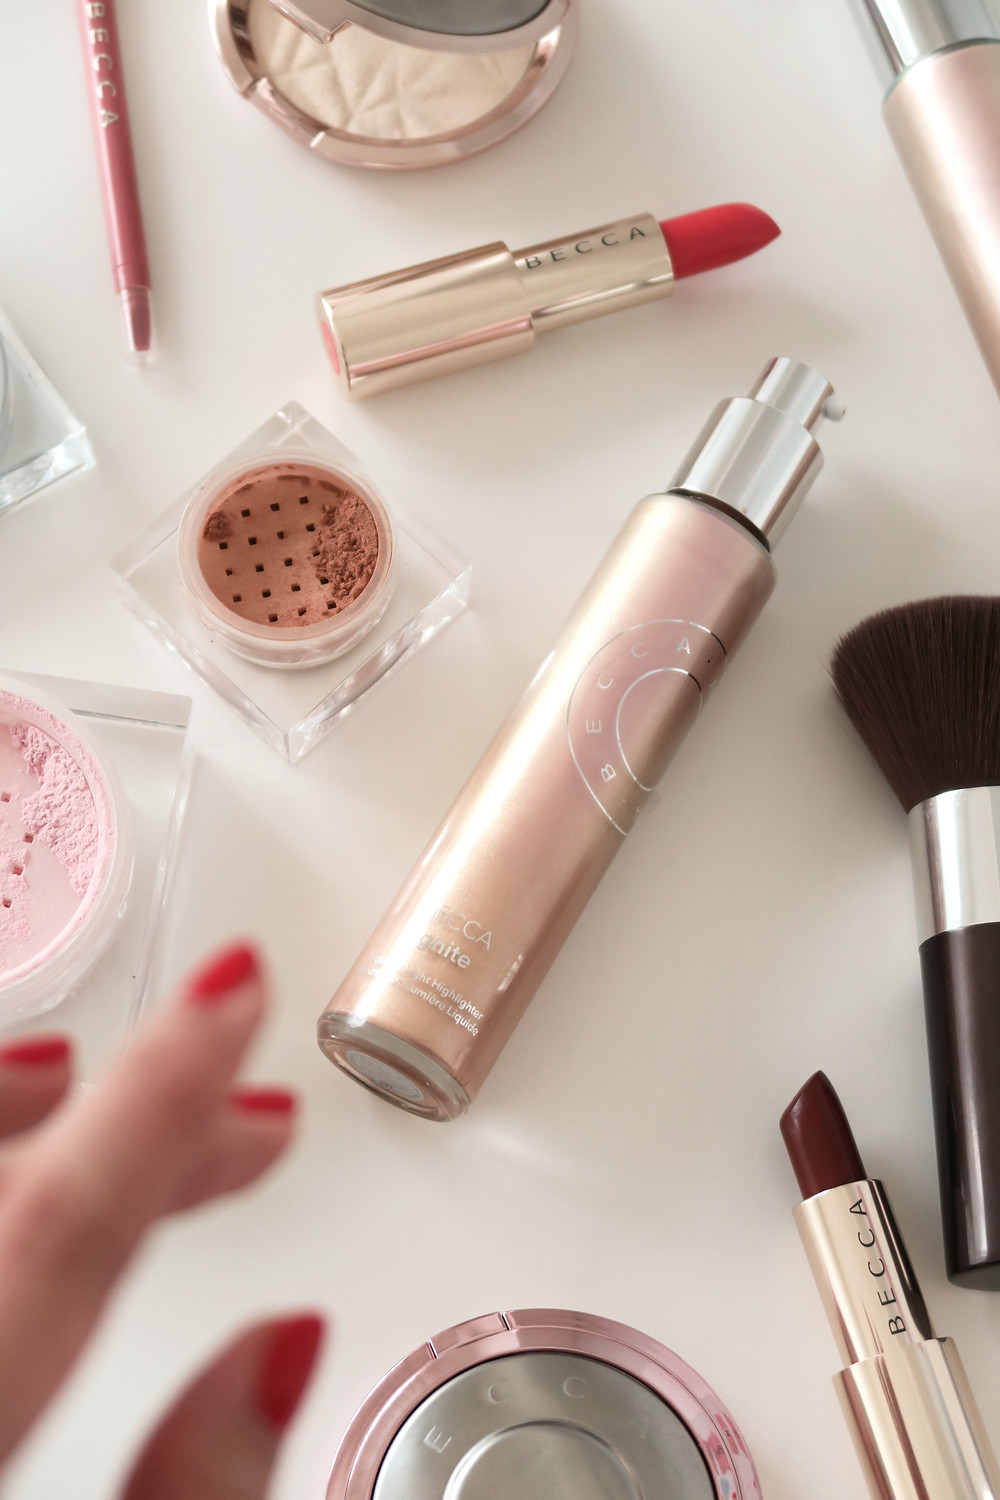 Becca Cosmetics Ignite Liquified Light Face & Body Highlighter Review